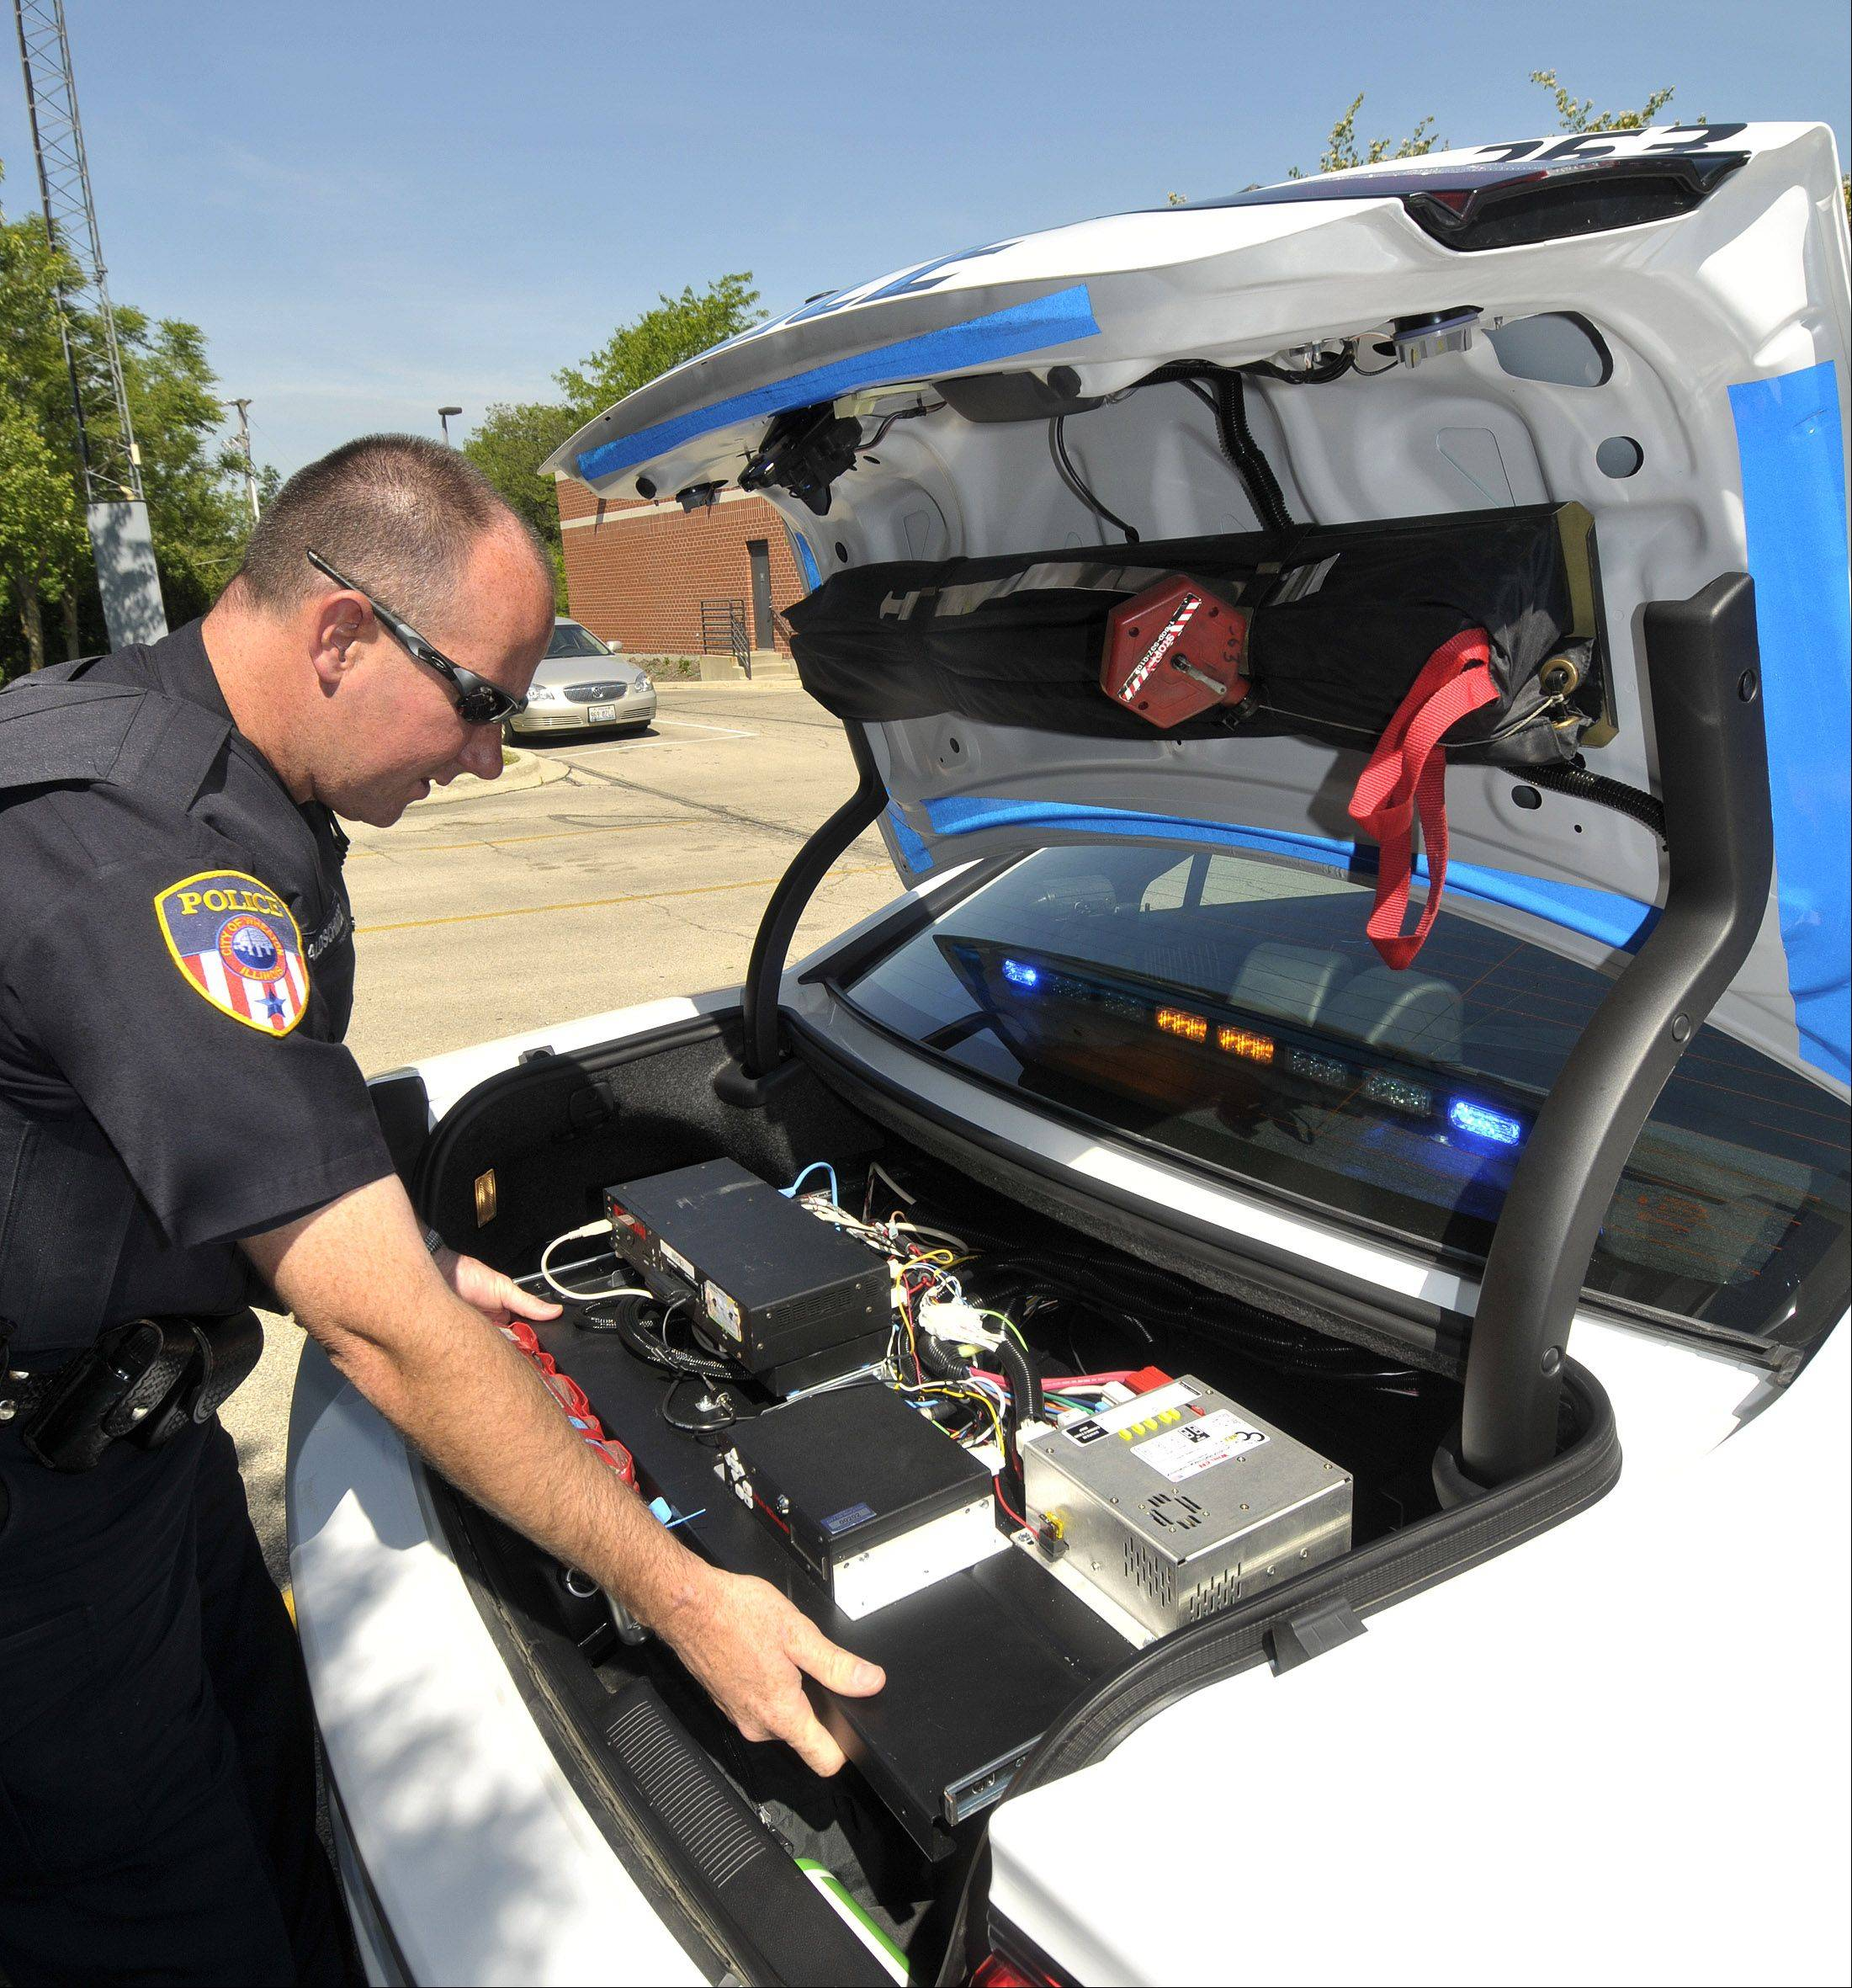 Wheaton police officer Neil Waldschmidt shows how the 2-way radio equipment in the trunk is on a slide out tray which makes it easier and faster for the radio technicians to get at the gear for repairs.